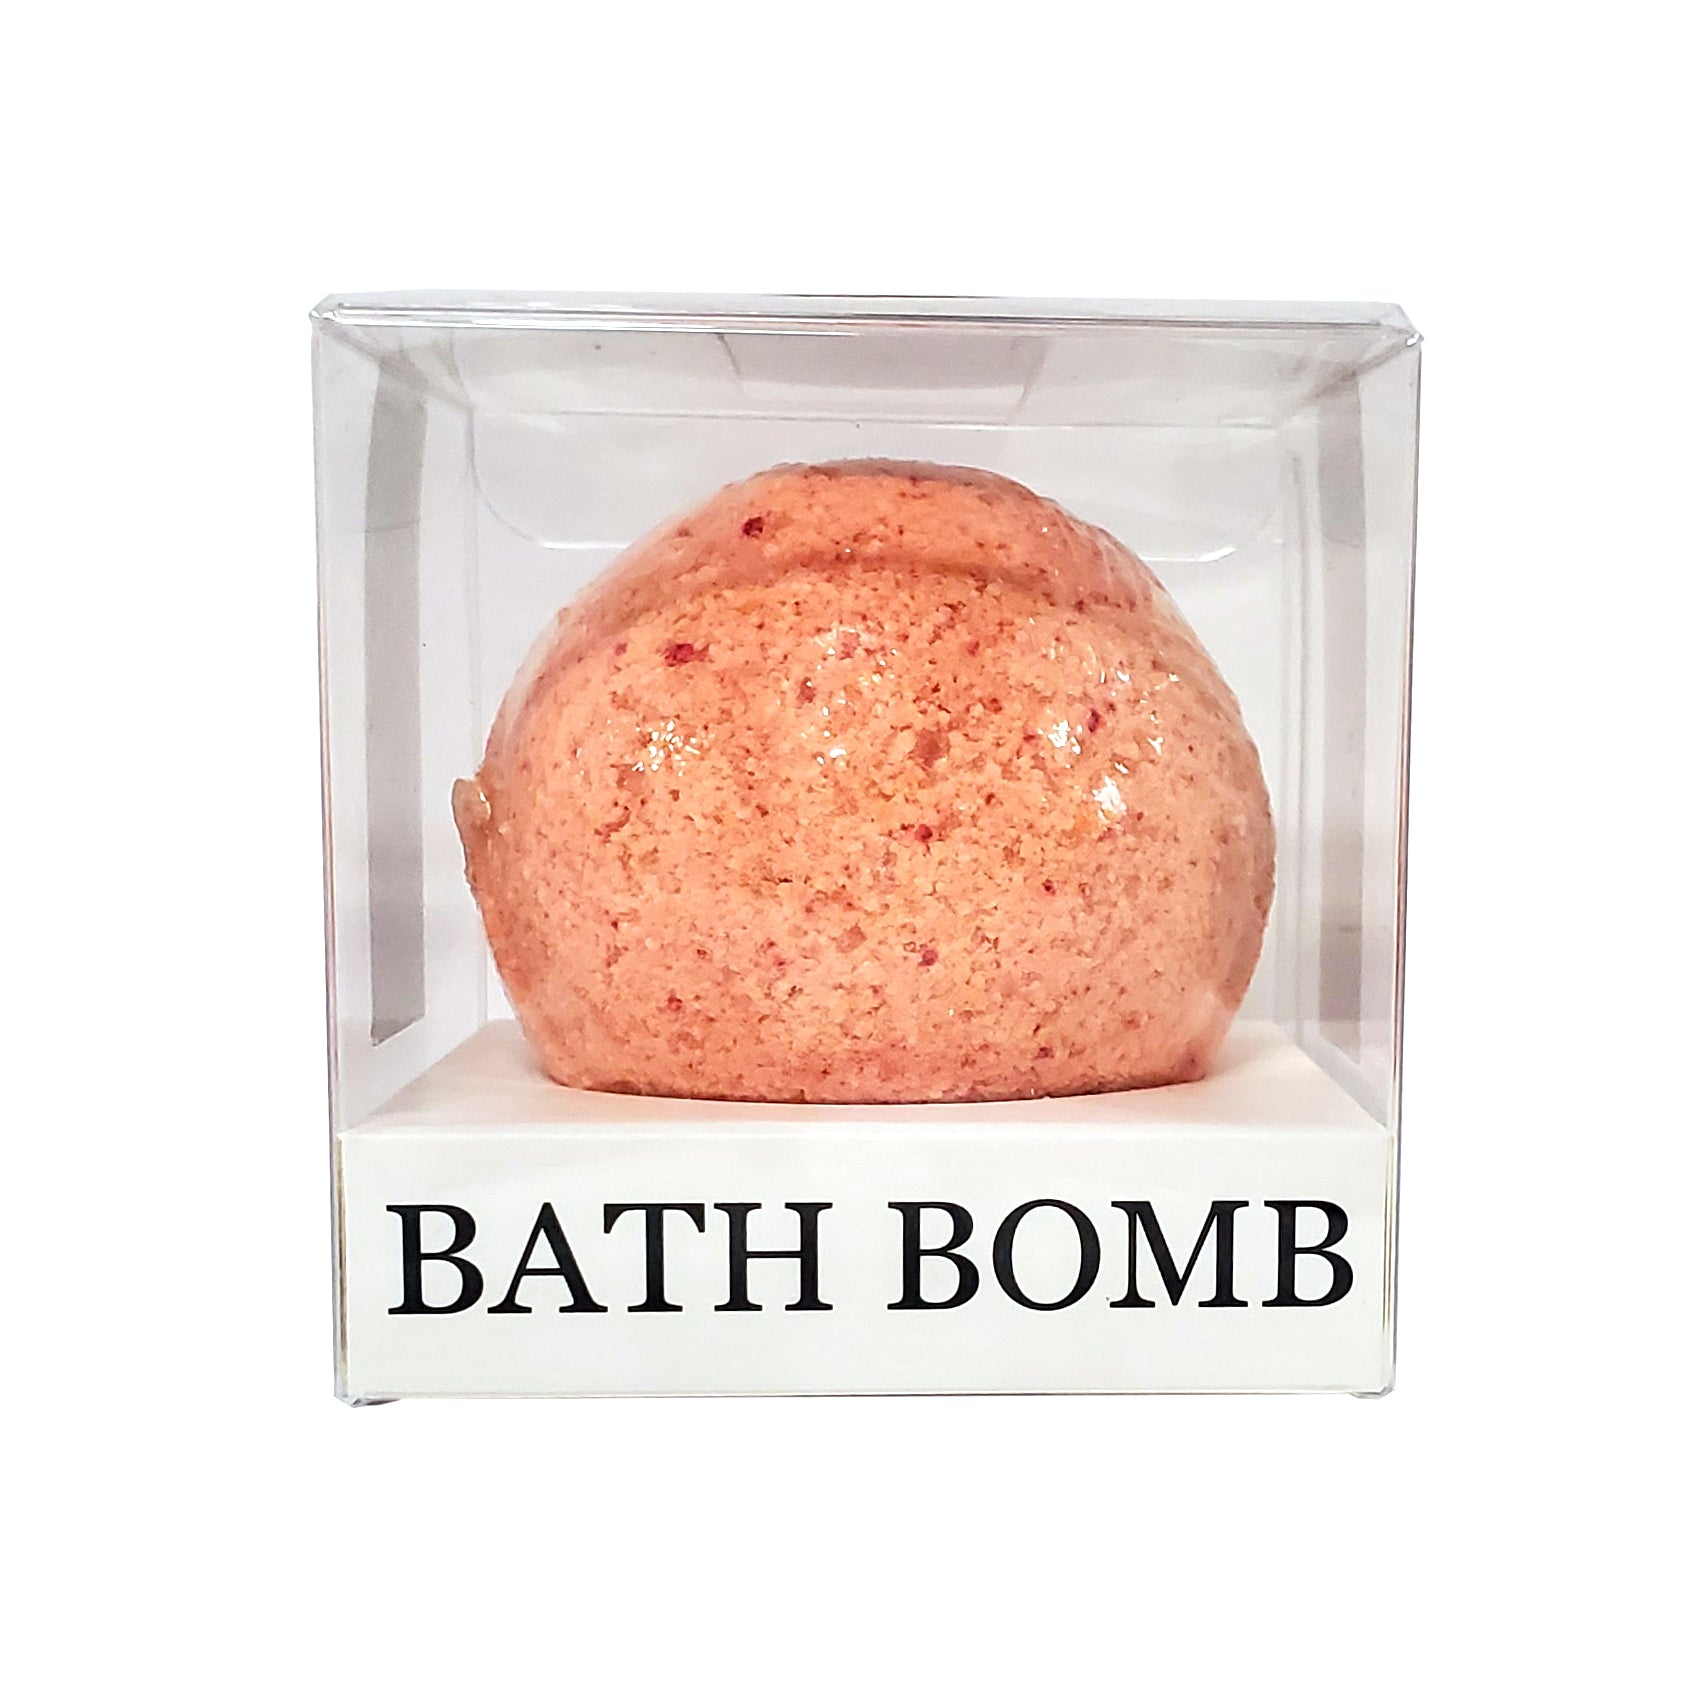 100 MG Full Spectrum CBD Bath Bomb